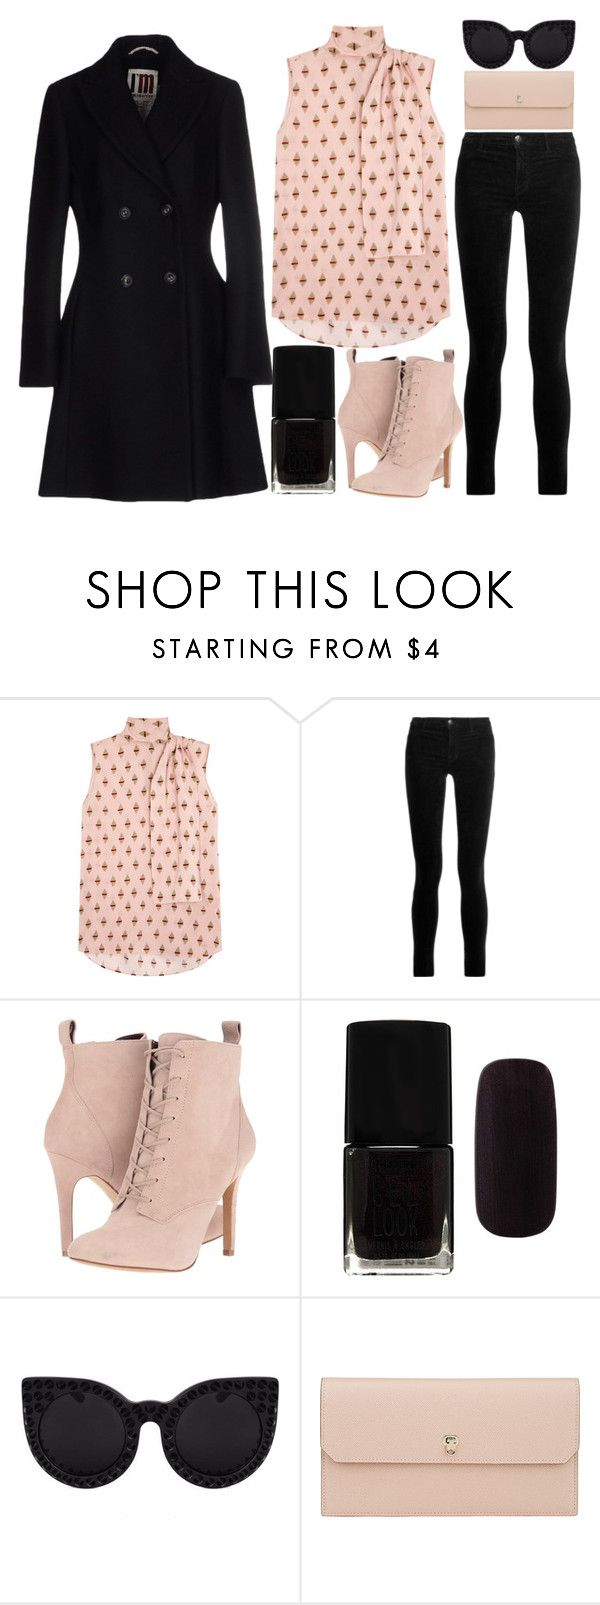 """""""Sunday brunch!!"""" by j-n-a ❤ liked on Polyvore featuring Valentino, J Brand, BCBGeneration, Forever 21, Delalle, Valextra and I'm Isola Marras"""